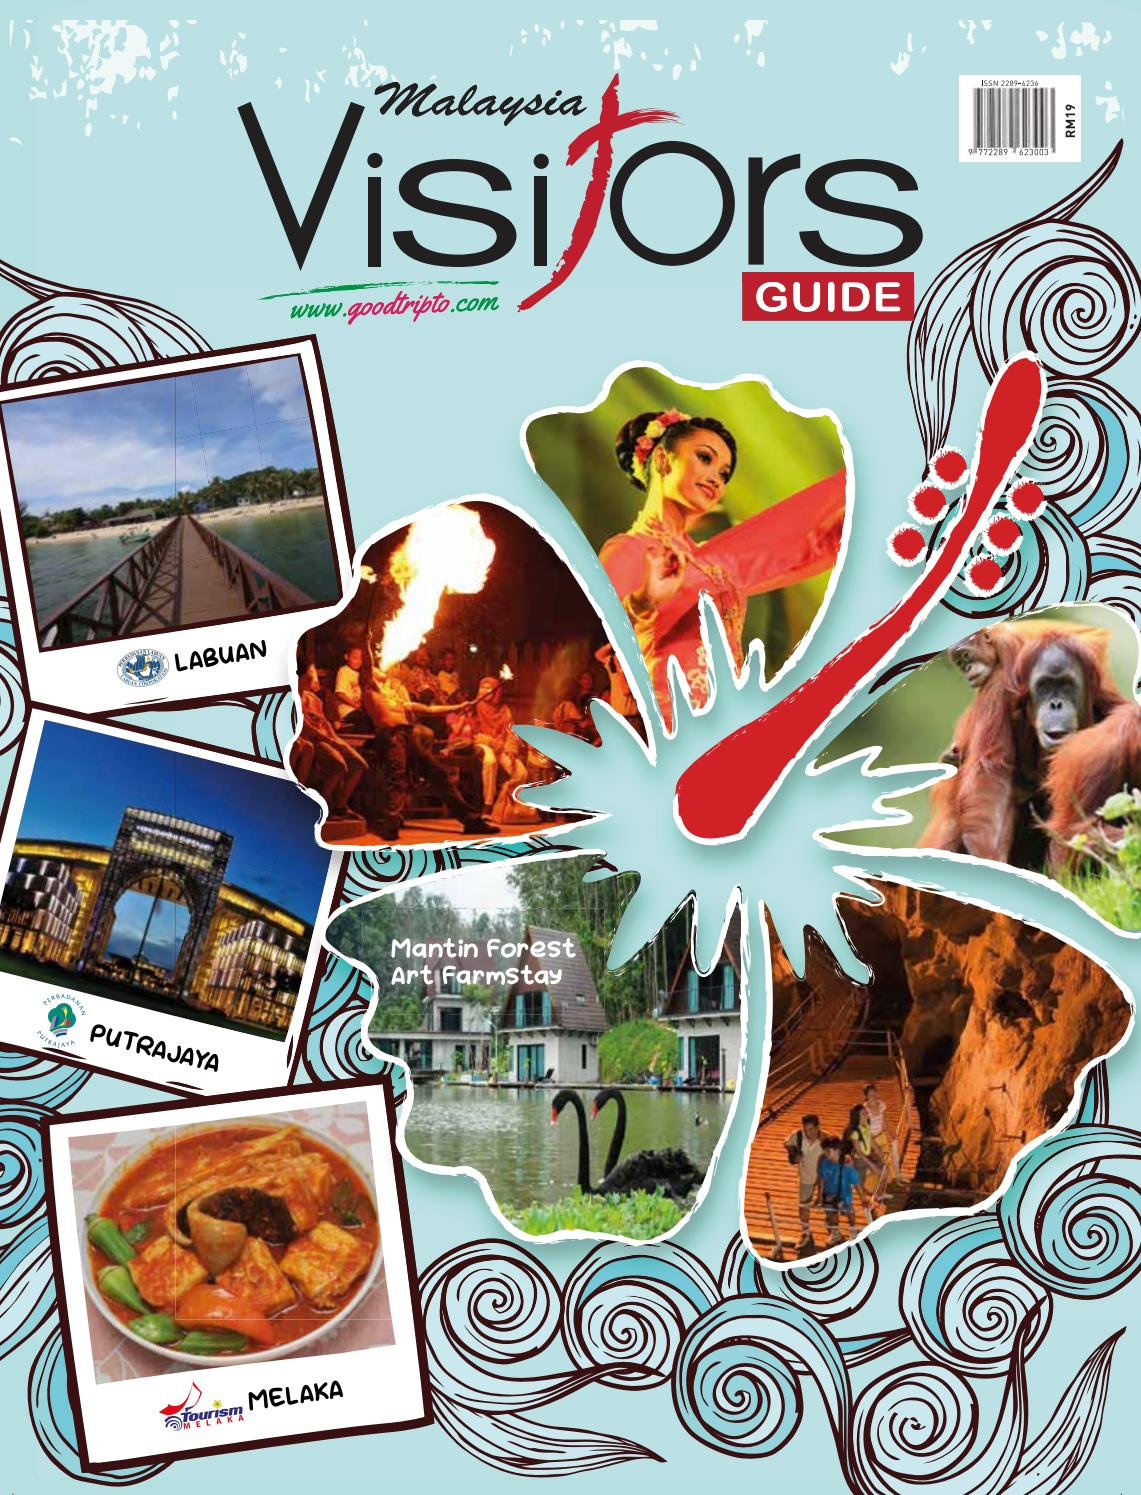 Malaysia Visitors Guide 2018 2019 29th Edition By Tourism Karpet Spiral Spin Hitam Publications Corporation Sdn Bhd Issuu